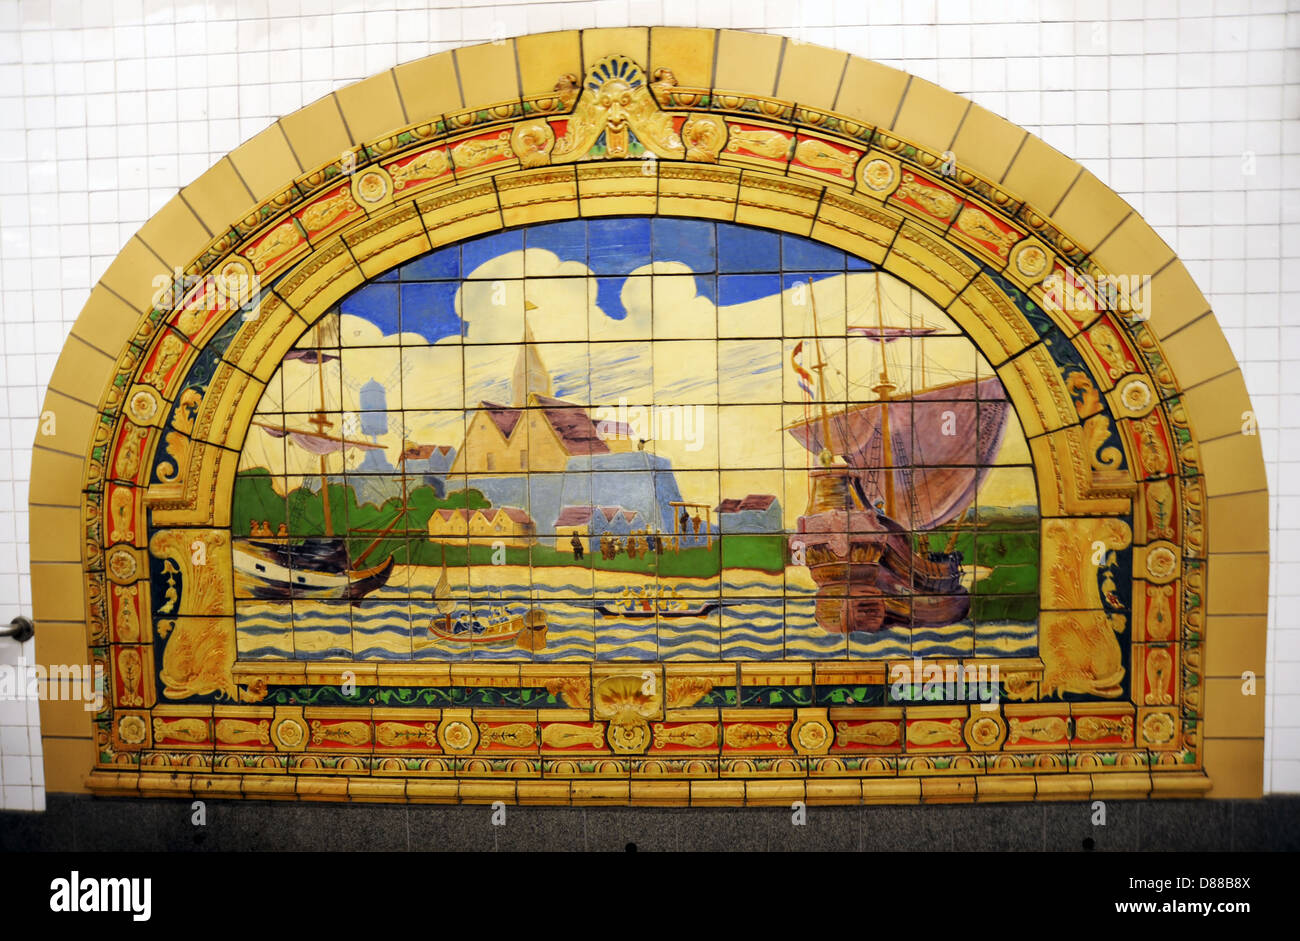 New York Subway Wall Stock Photos & New York Subway Wall Stock ...